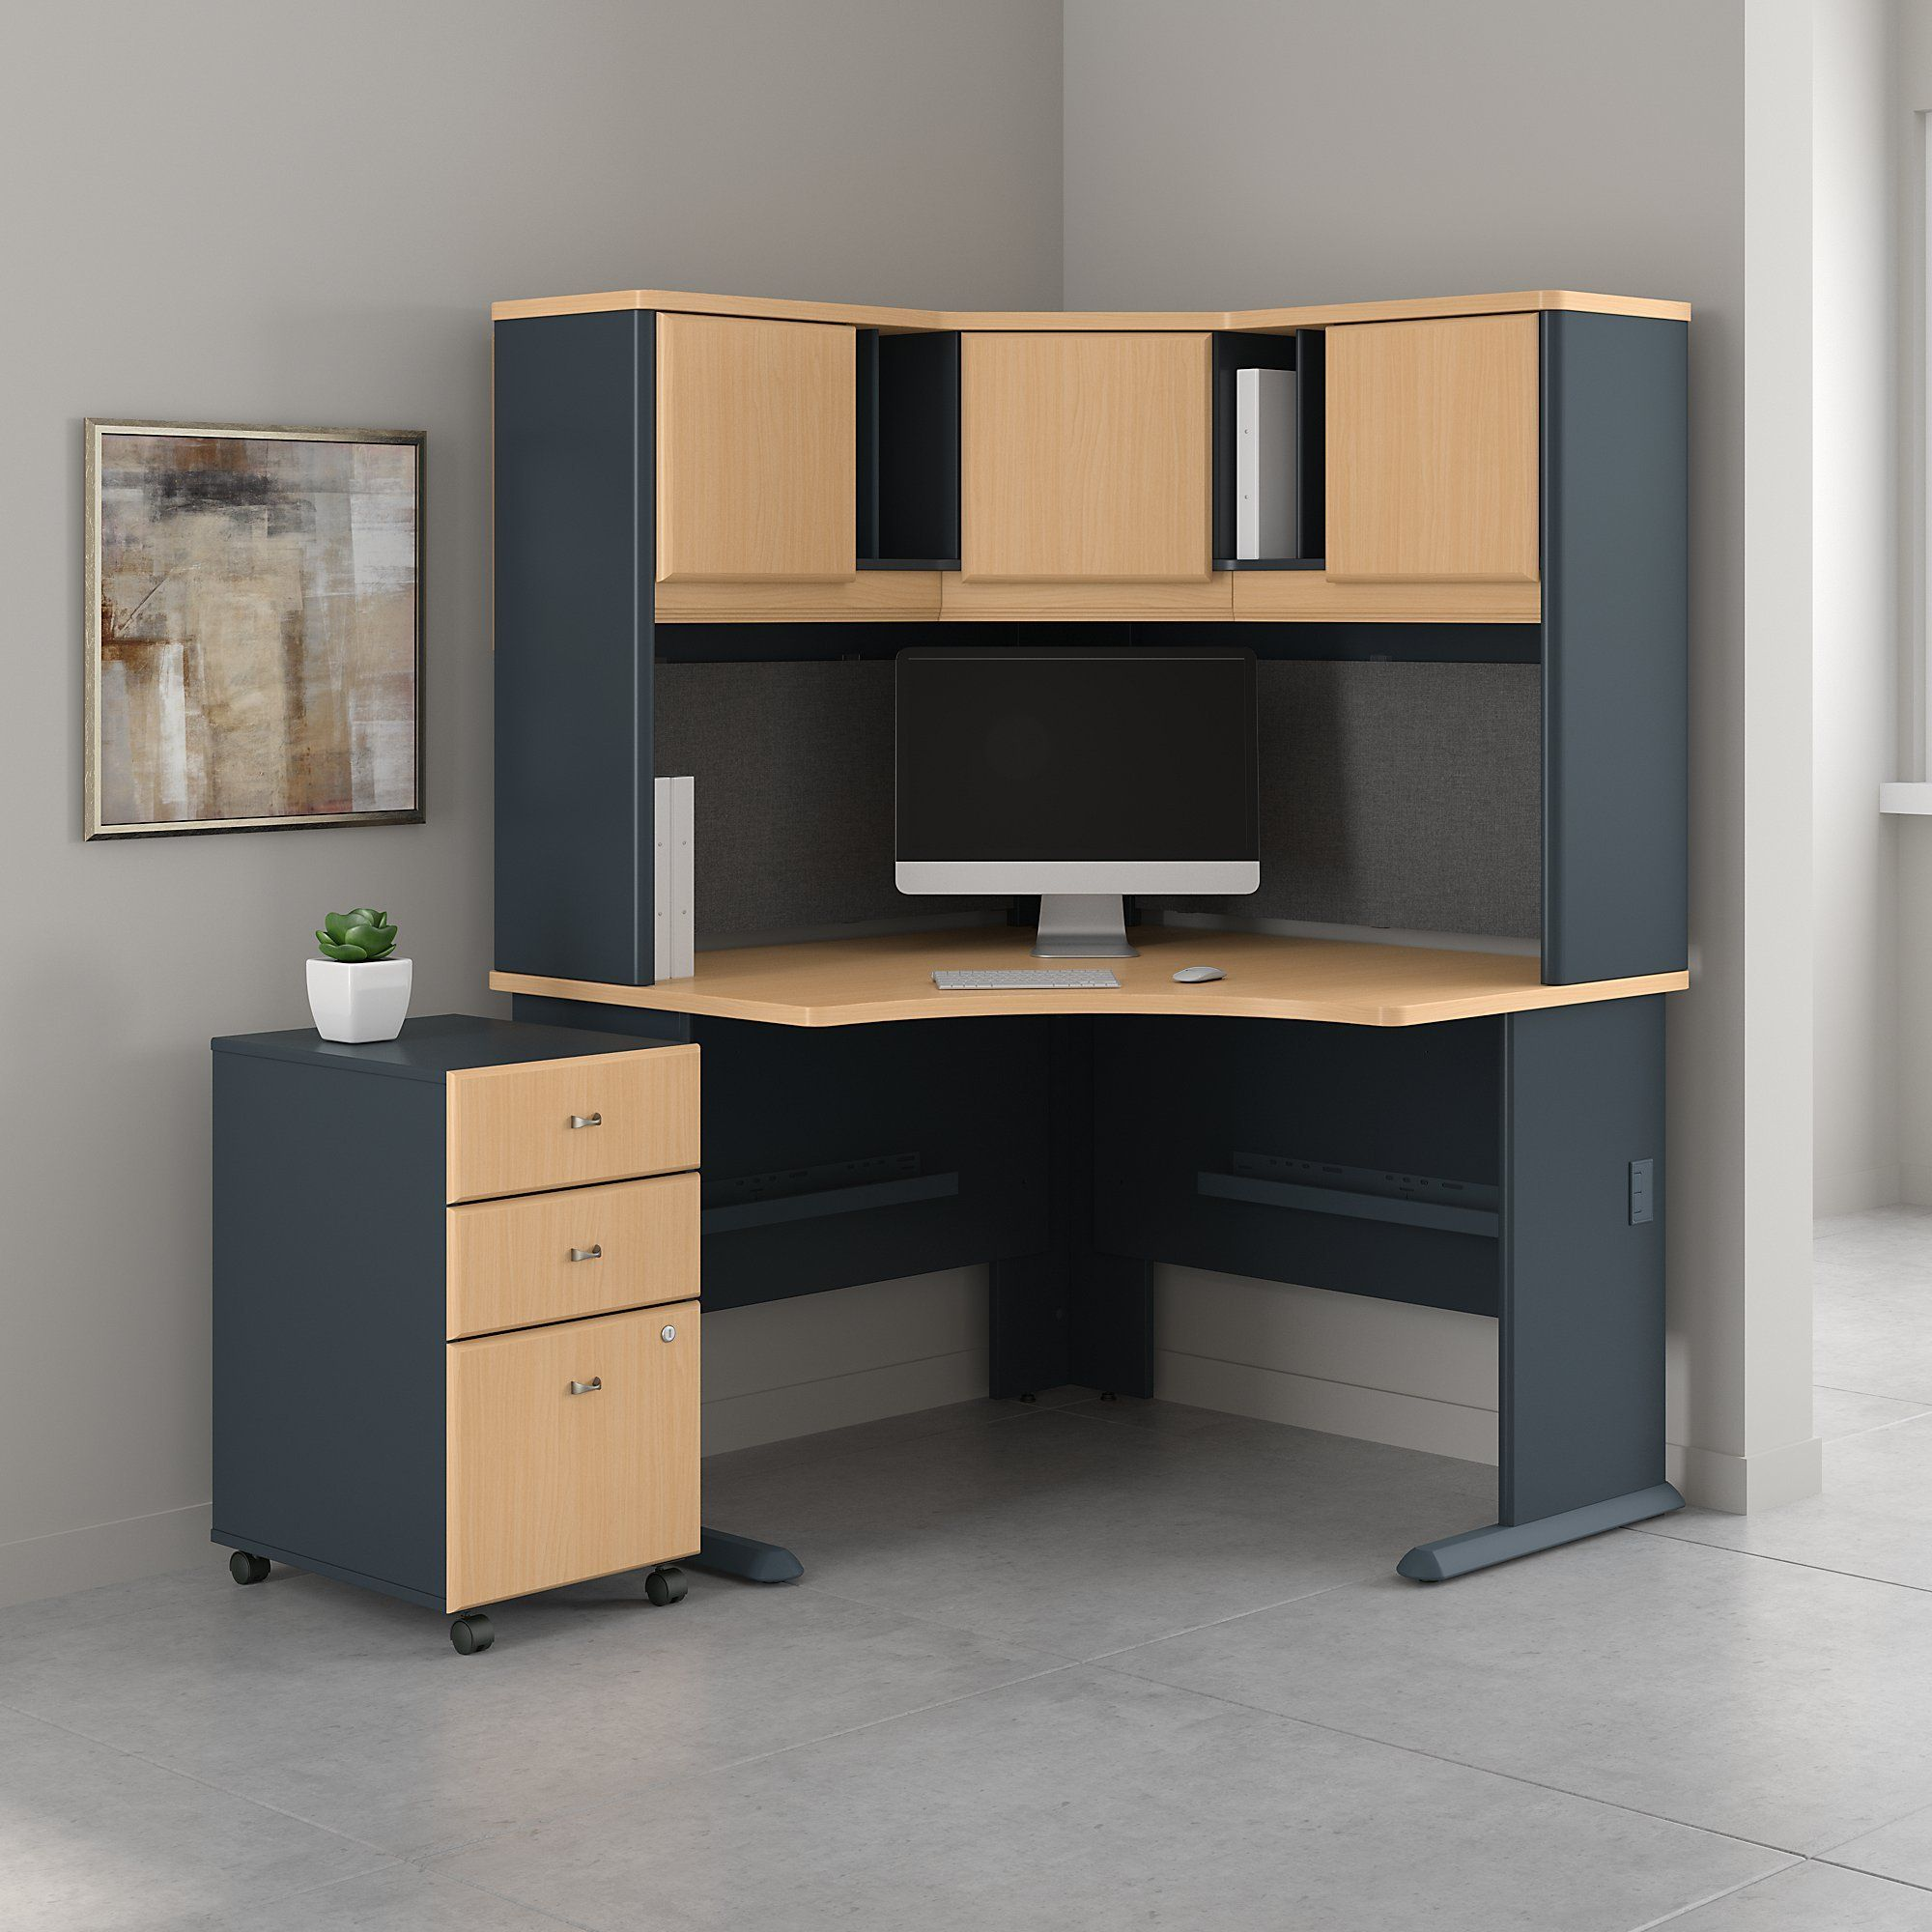 Pin On Organizer Filing Cabinets